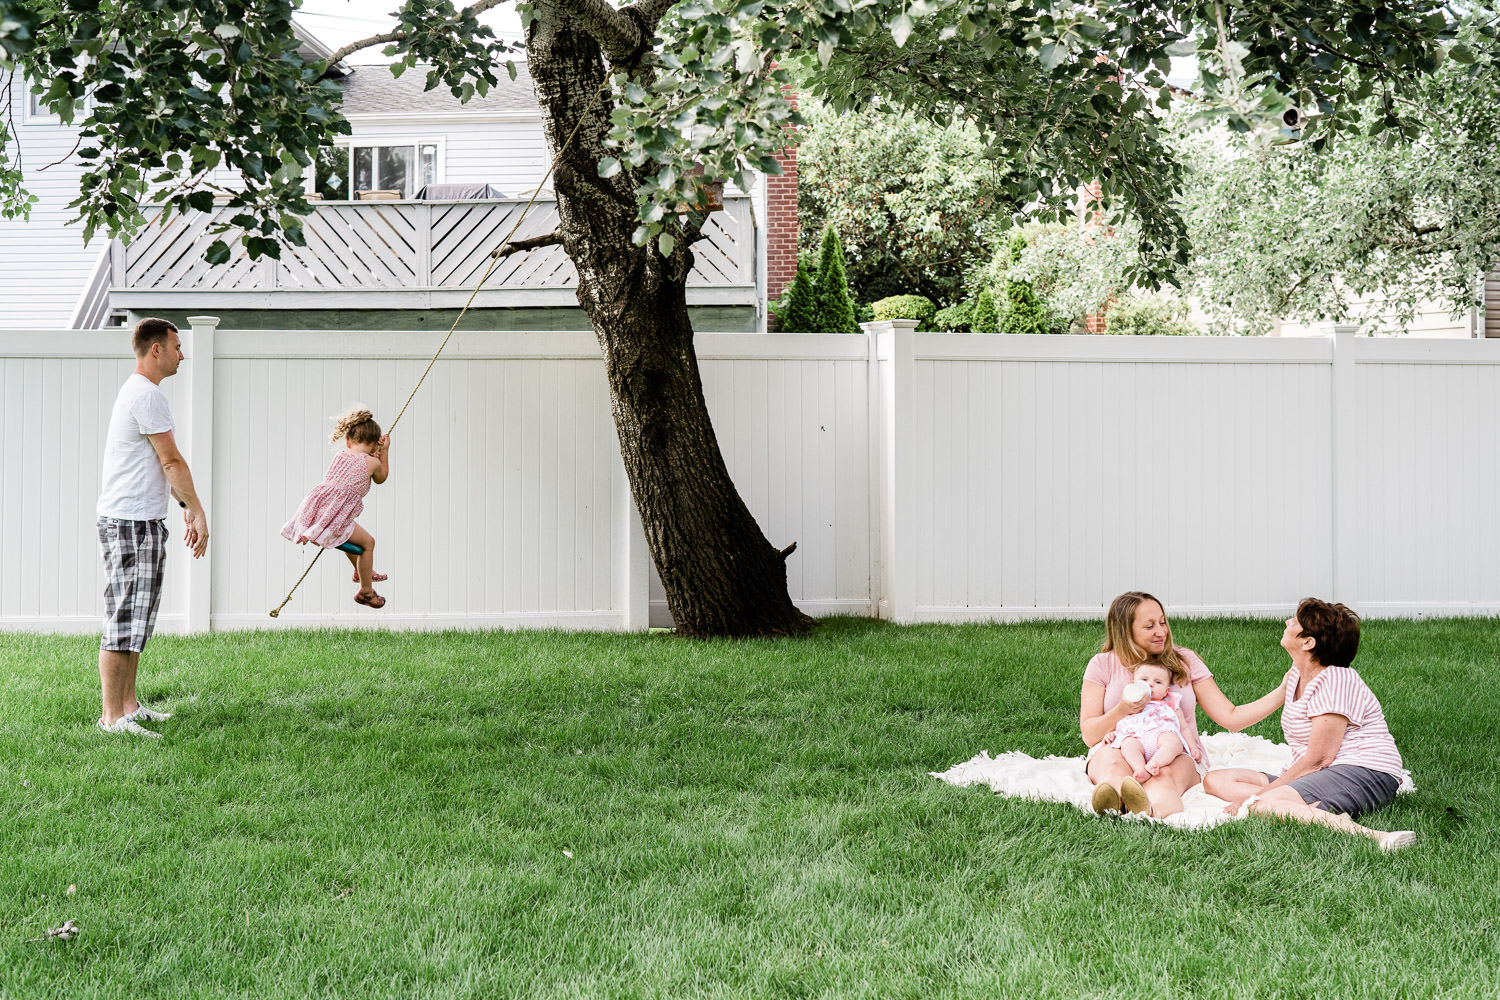 A family plays in their backyard.